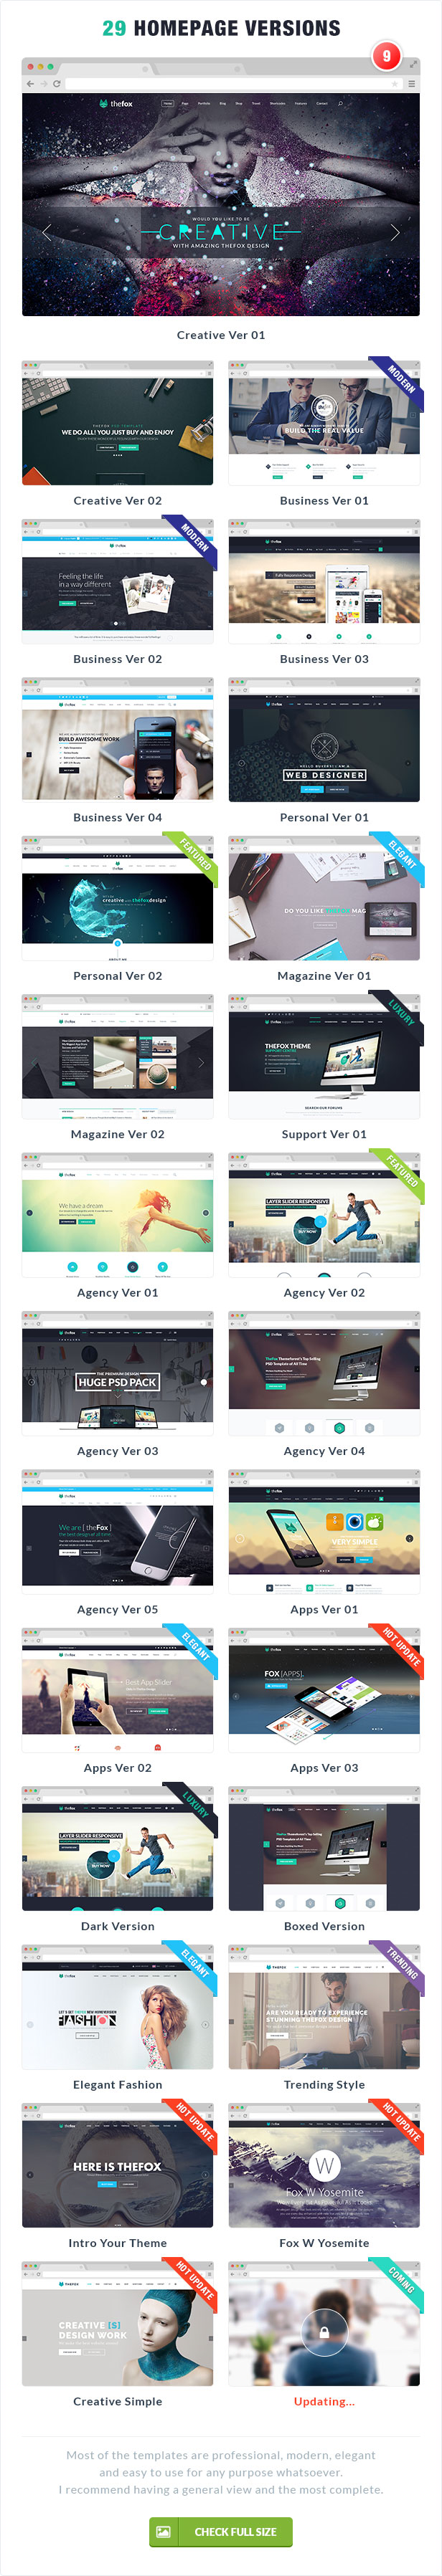 29 elegant homepage version - business - personal - agency - apps - creative - magazine - support - thefox psd download - professional